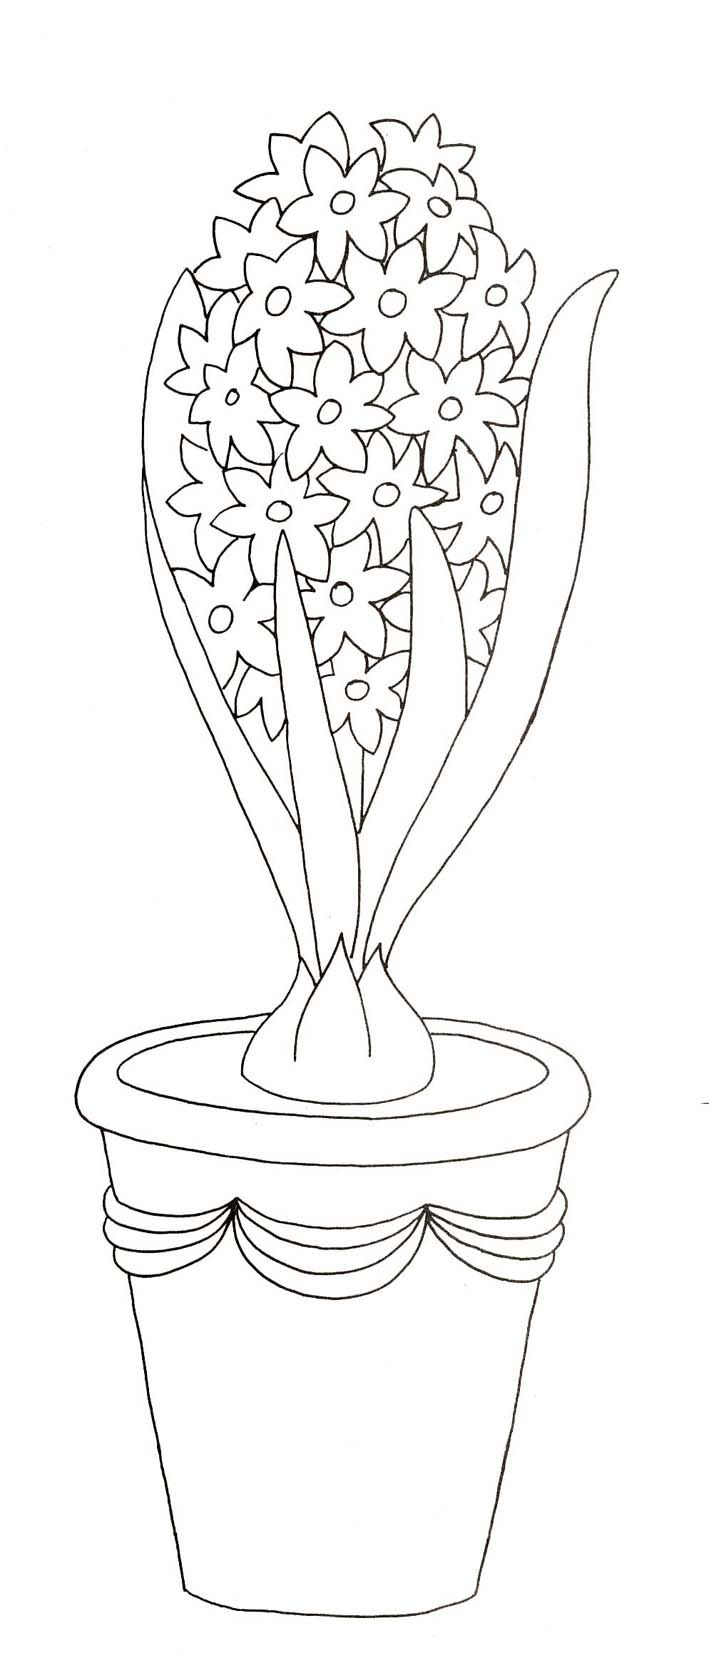 Spring rain coloring pages - Spring Coloring Pagespergamanoclip Art Kos R J Cint